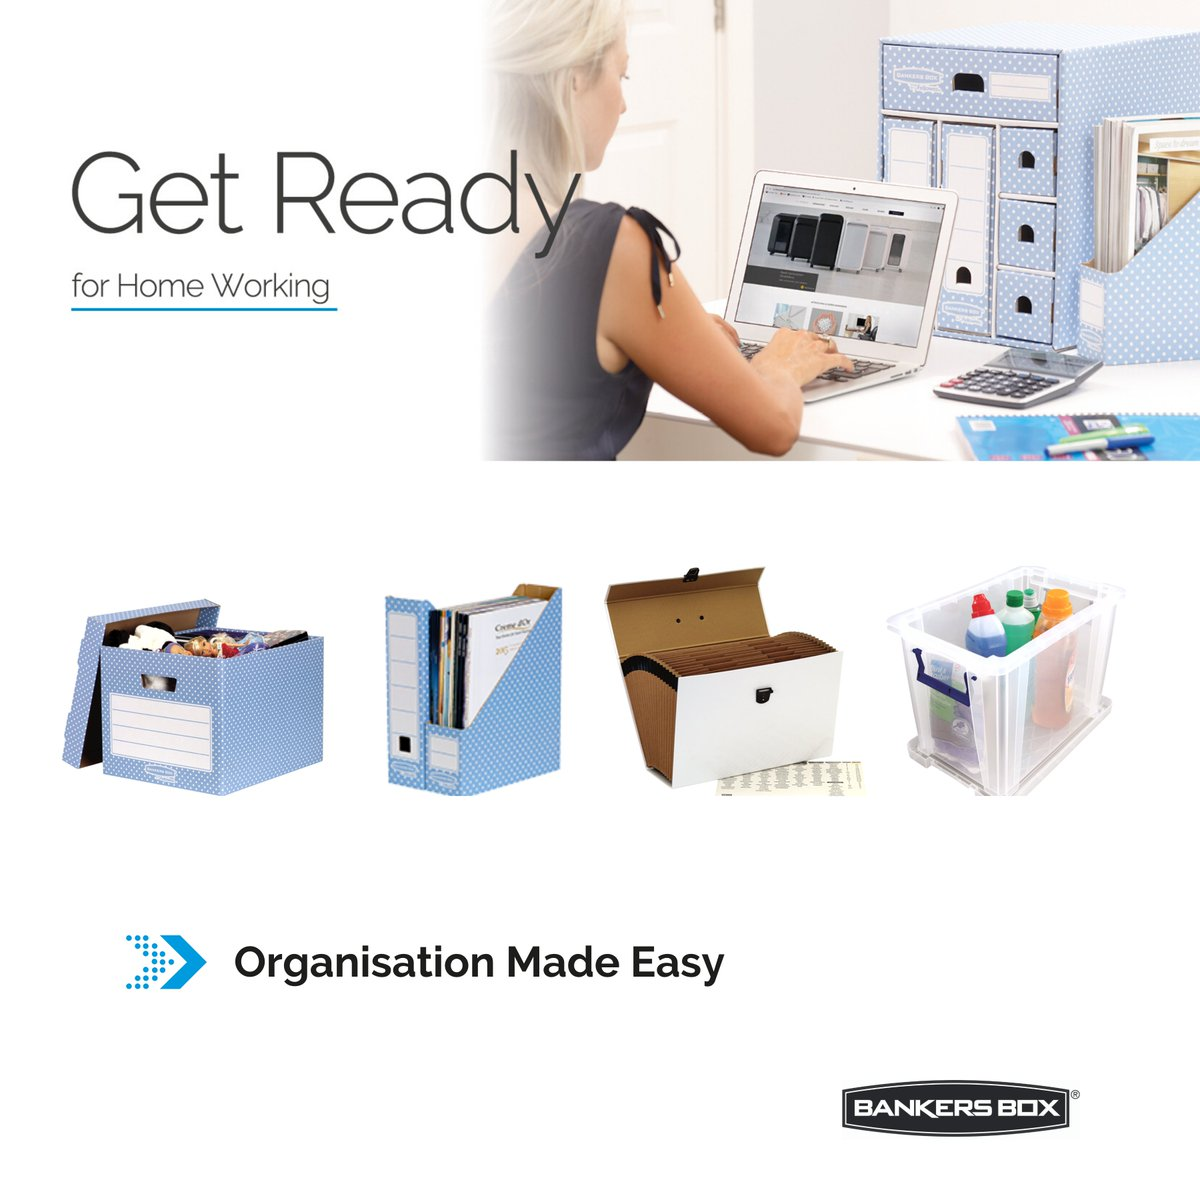 Keep your #homeoffice organised with BANKERS BOX® smart and stylish products to improve productivity and minimise stress. 📦 Storage Boxes 📦 Desktop Storage  📦 Handifile Organisers  📦 Pro Store™ Plastic Storage   Shop Now ➡️ https://t.co/EjO7pdBw9t https://t.co/0dCYwV73Tq